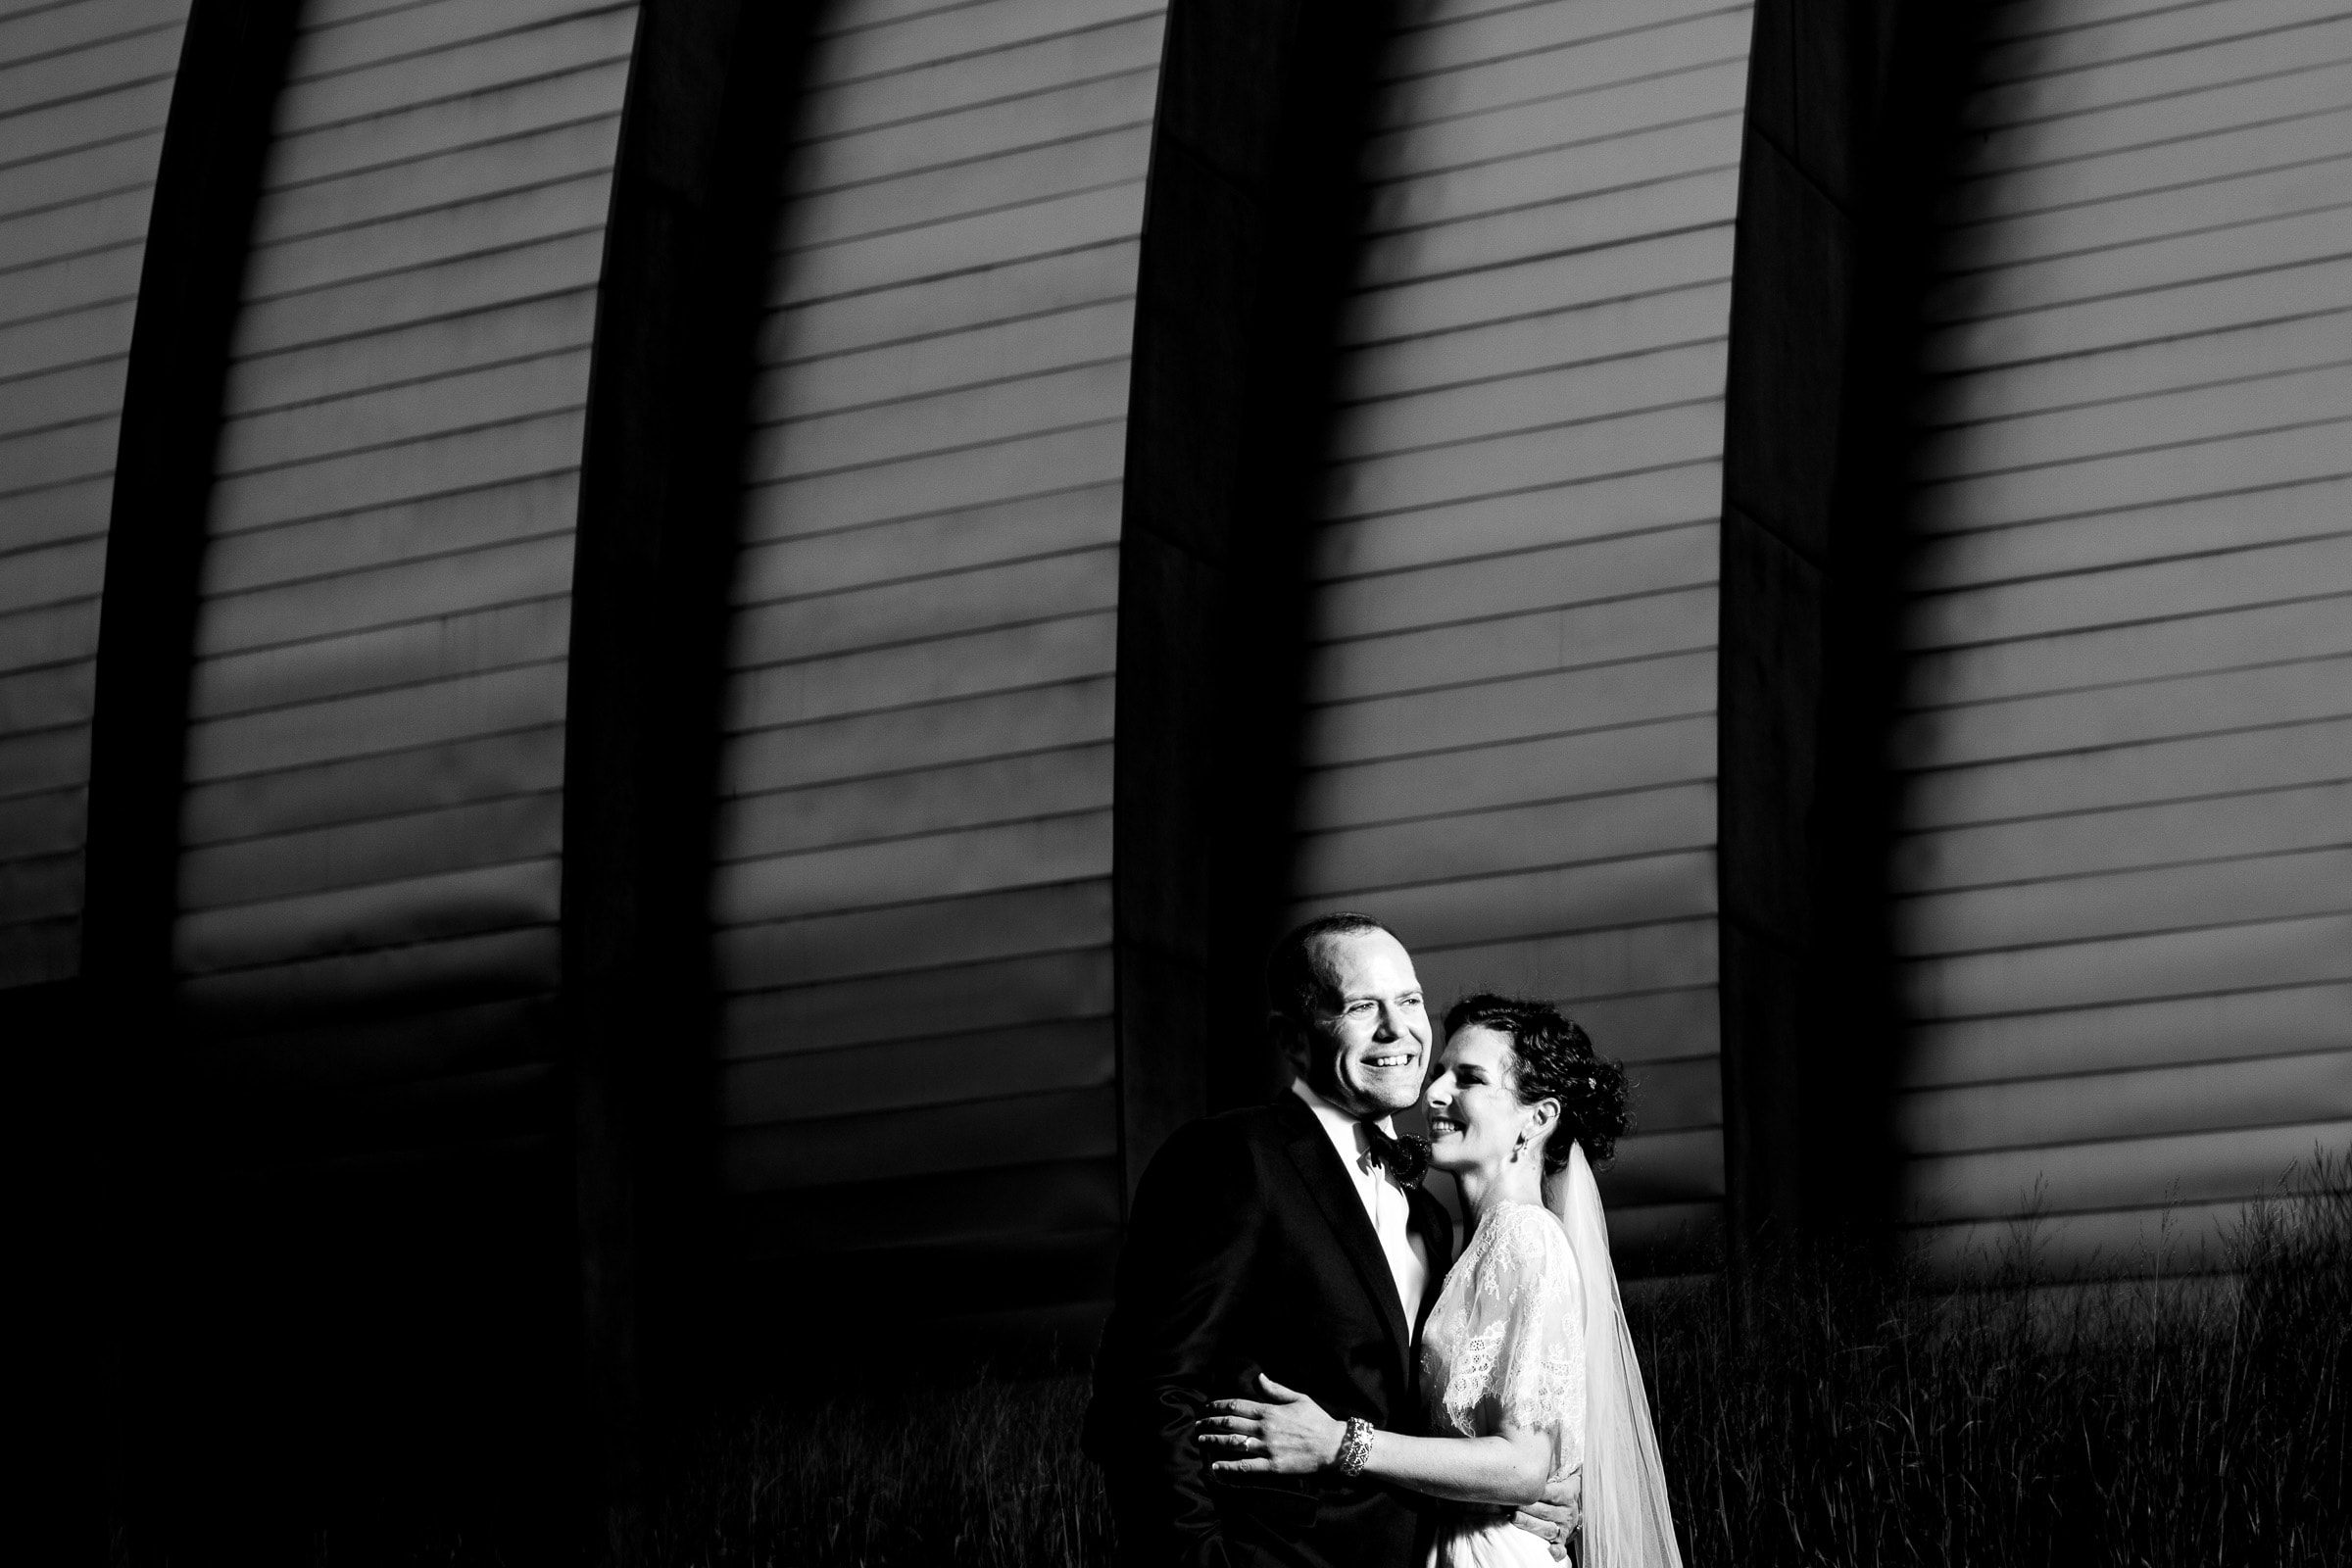 Bride and groom portrait at Kauffman Center during their Kansas City wedding